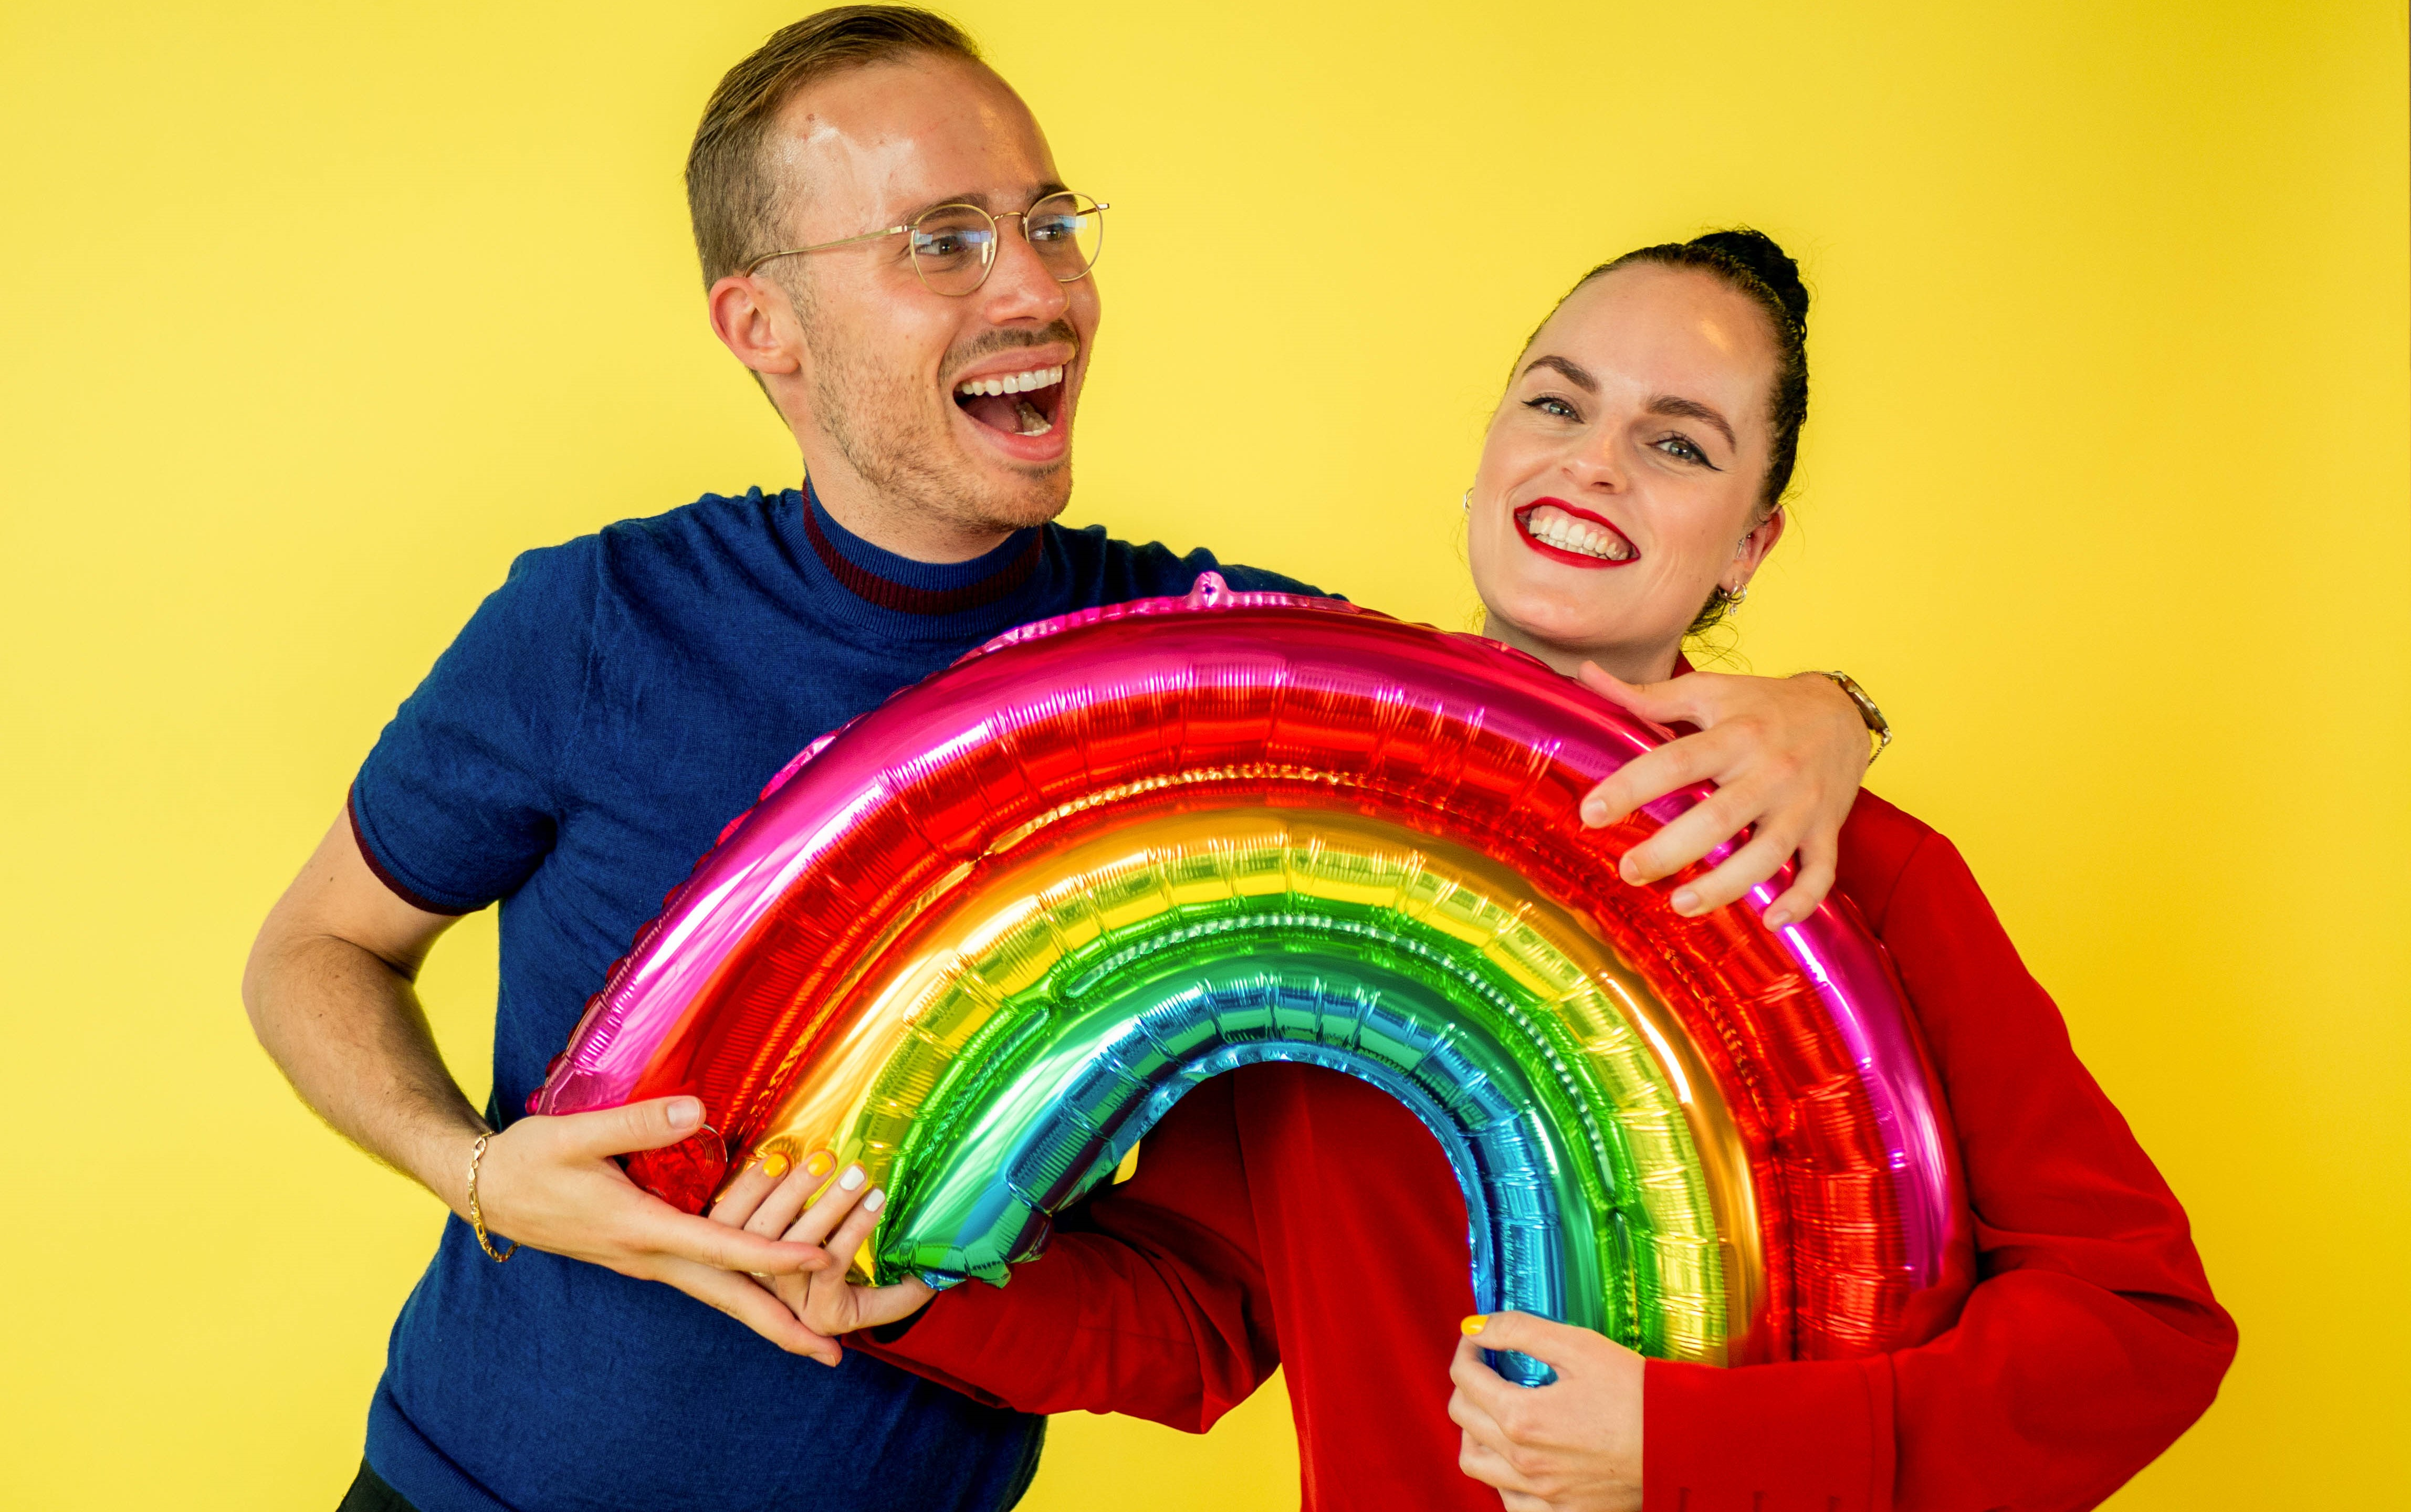 2 people hugging while holding an inflatable rainbow